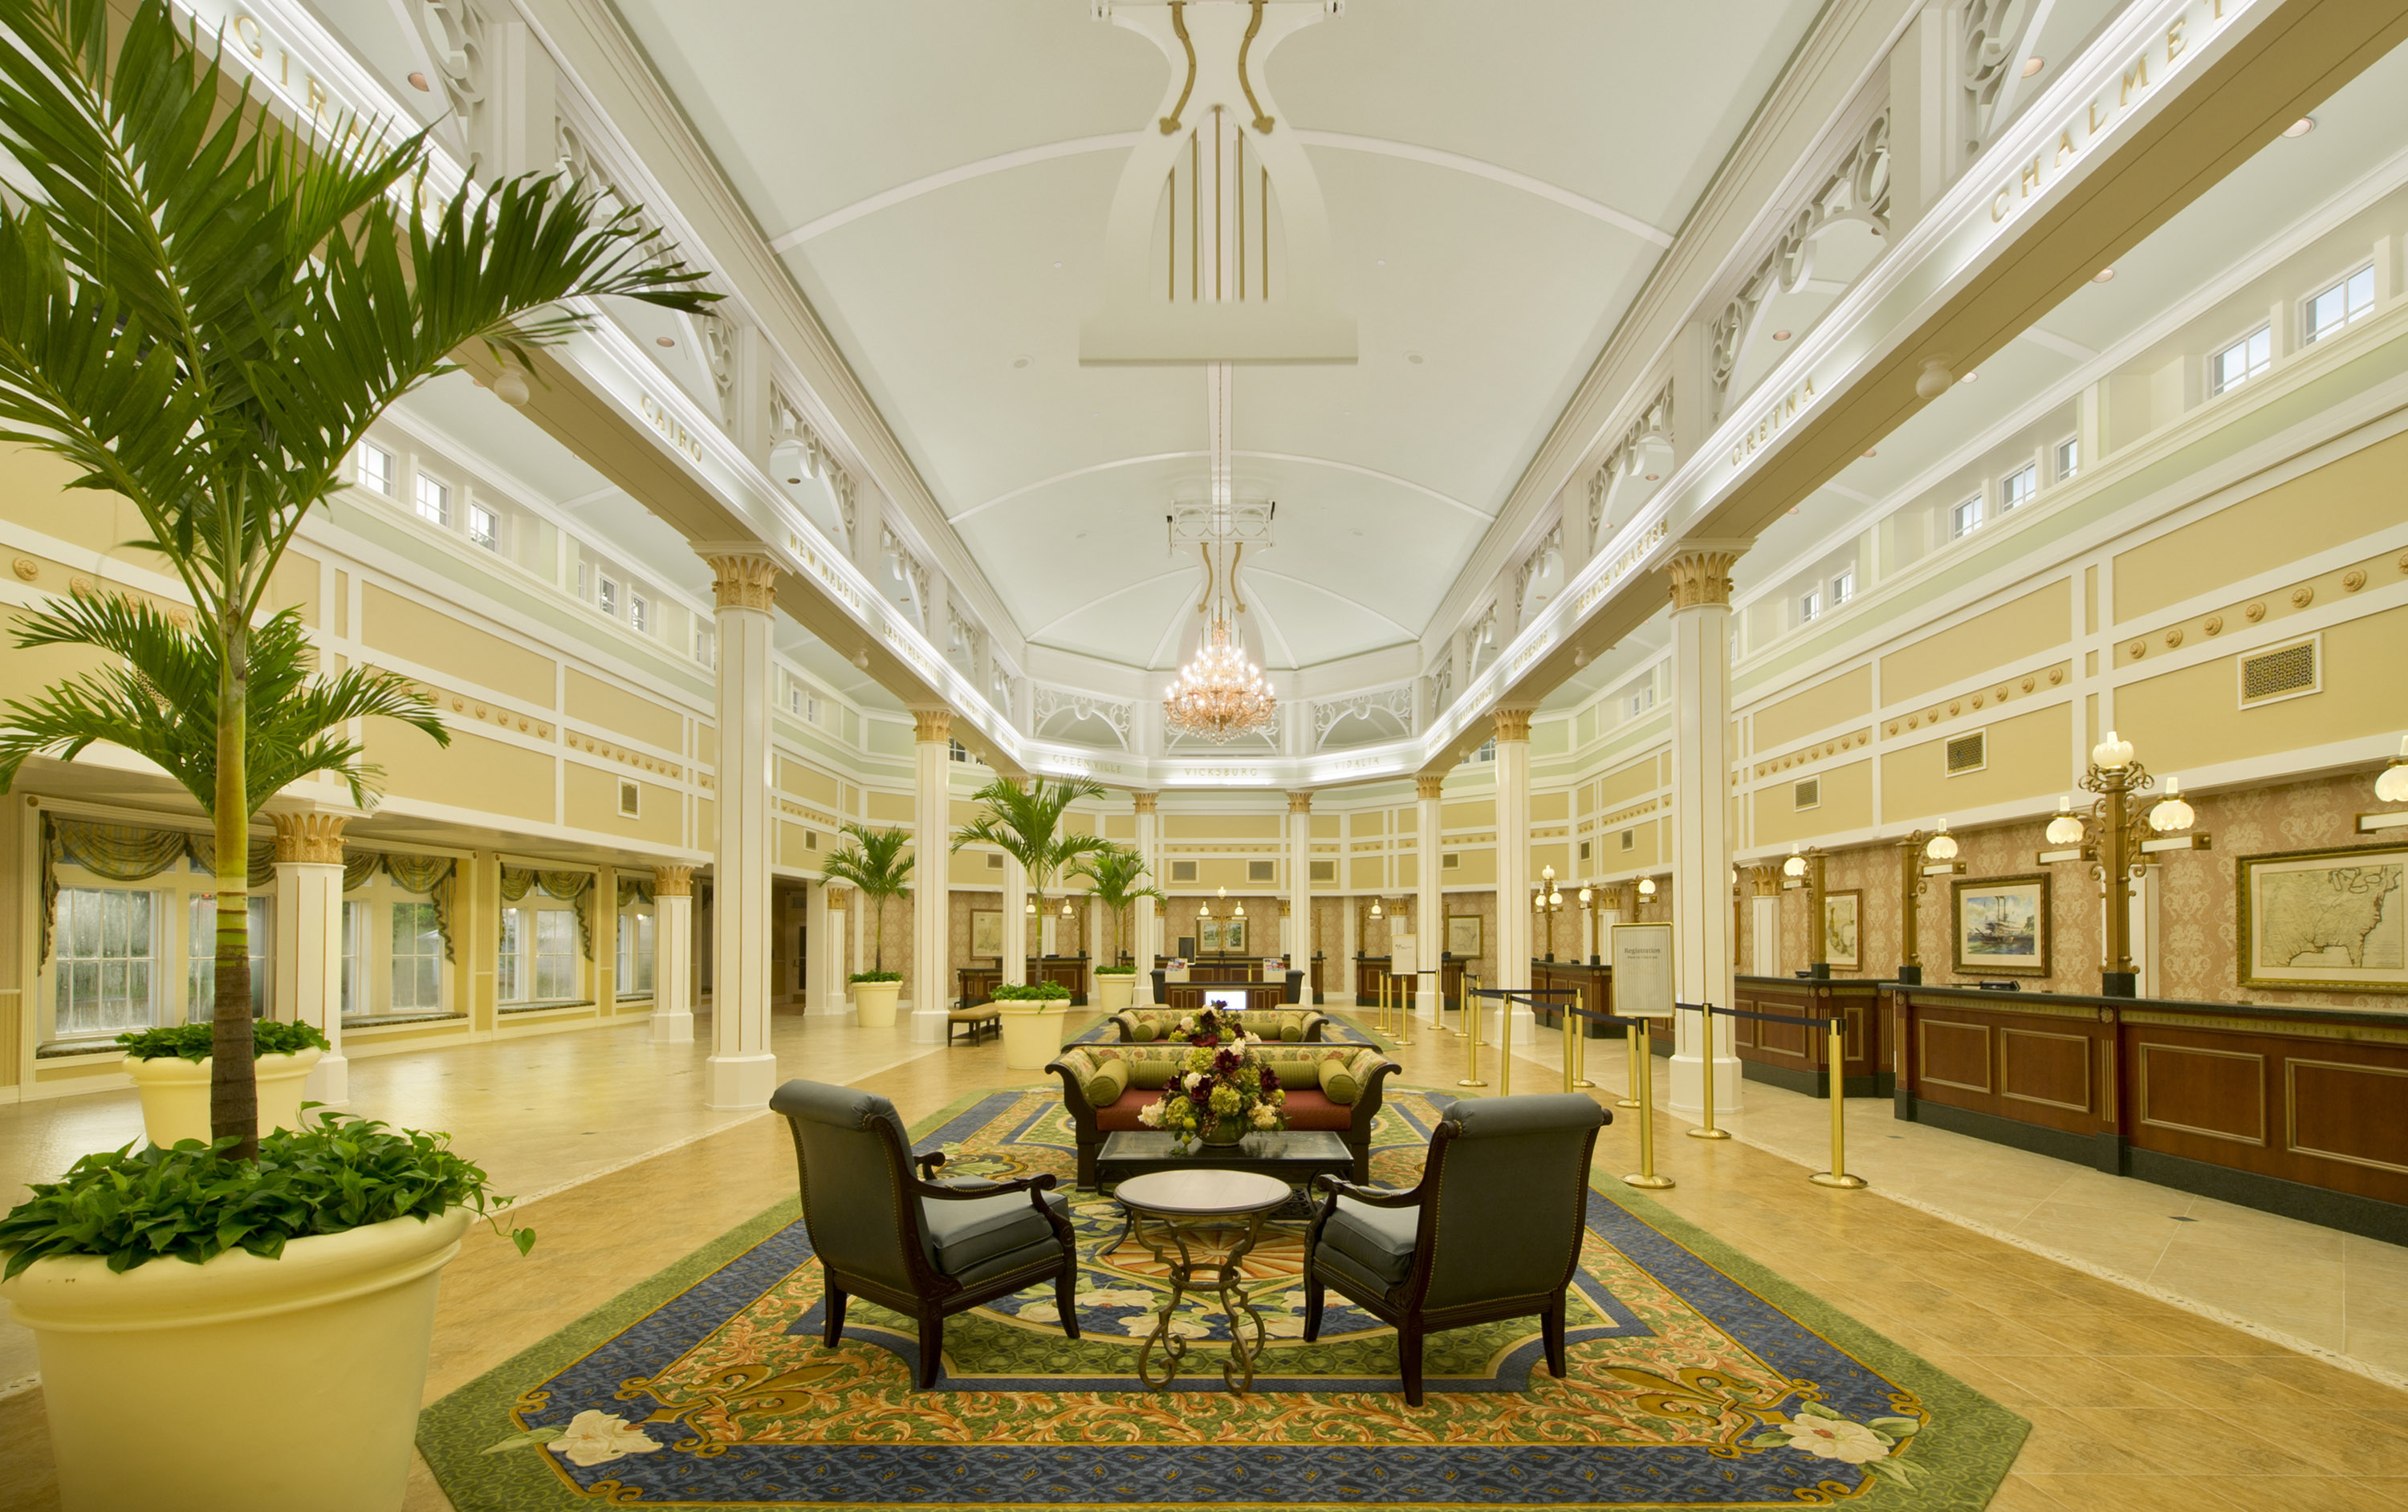 Photo of the lobby at Port Orleans Riverside, a beautiful Disney Moderate resort.